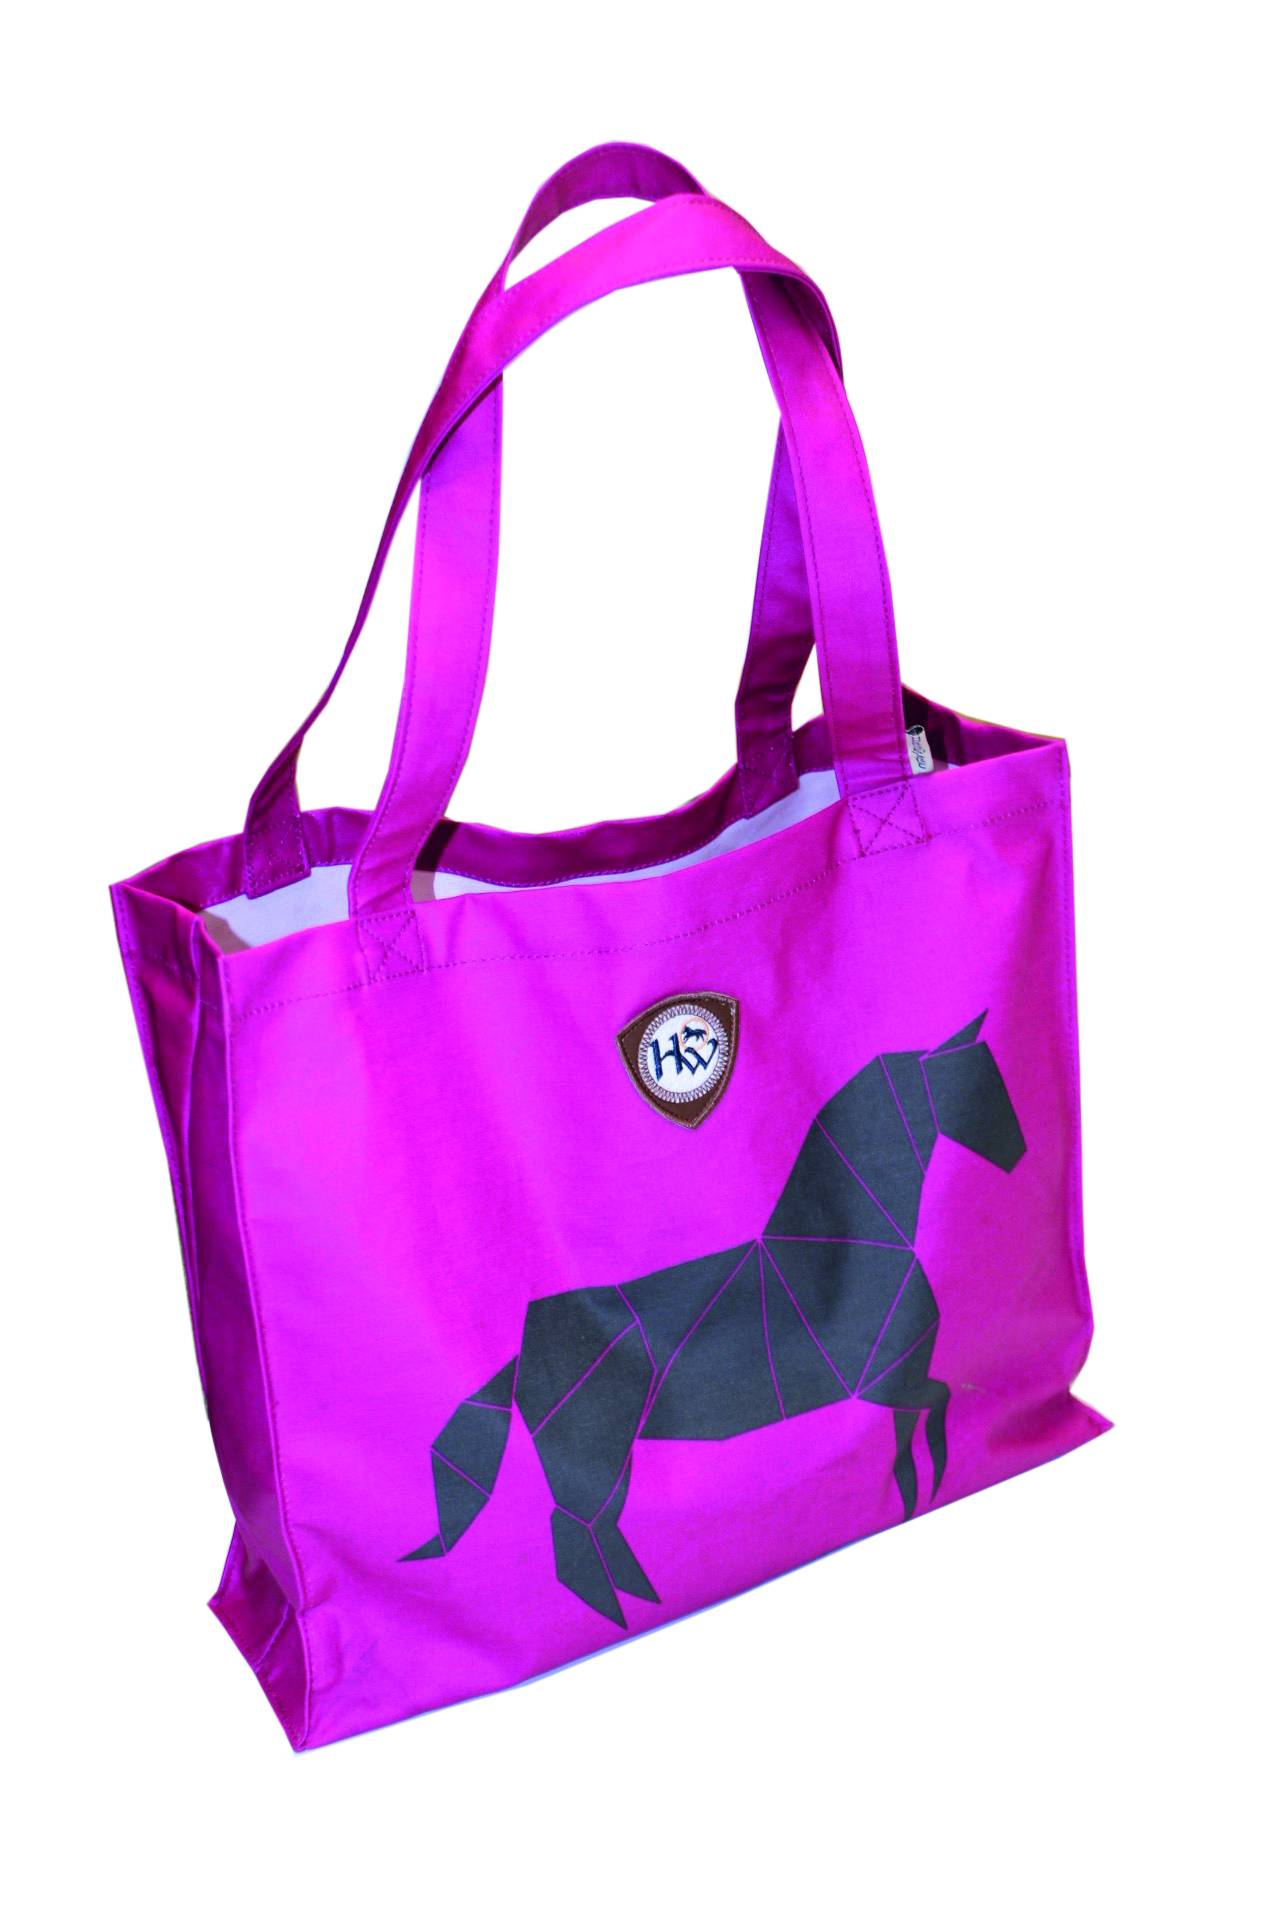 Horseware Canvas PU Tote